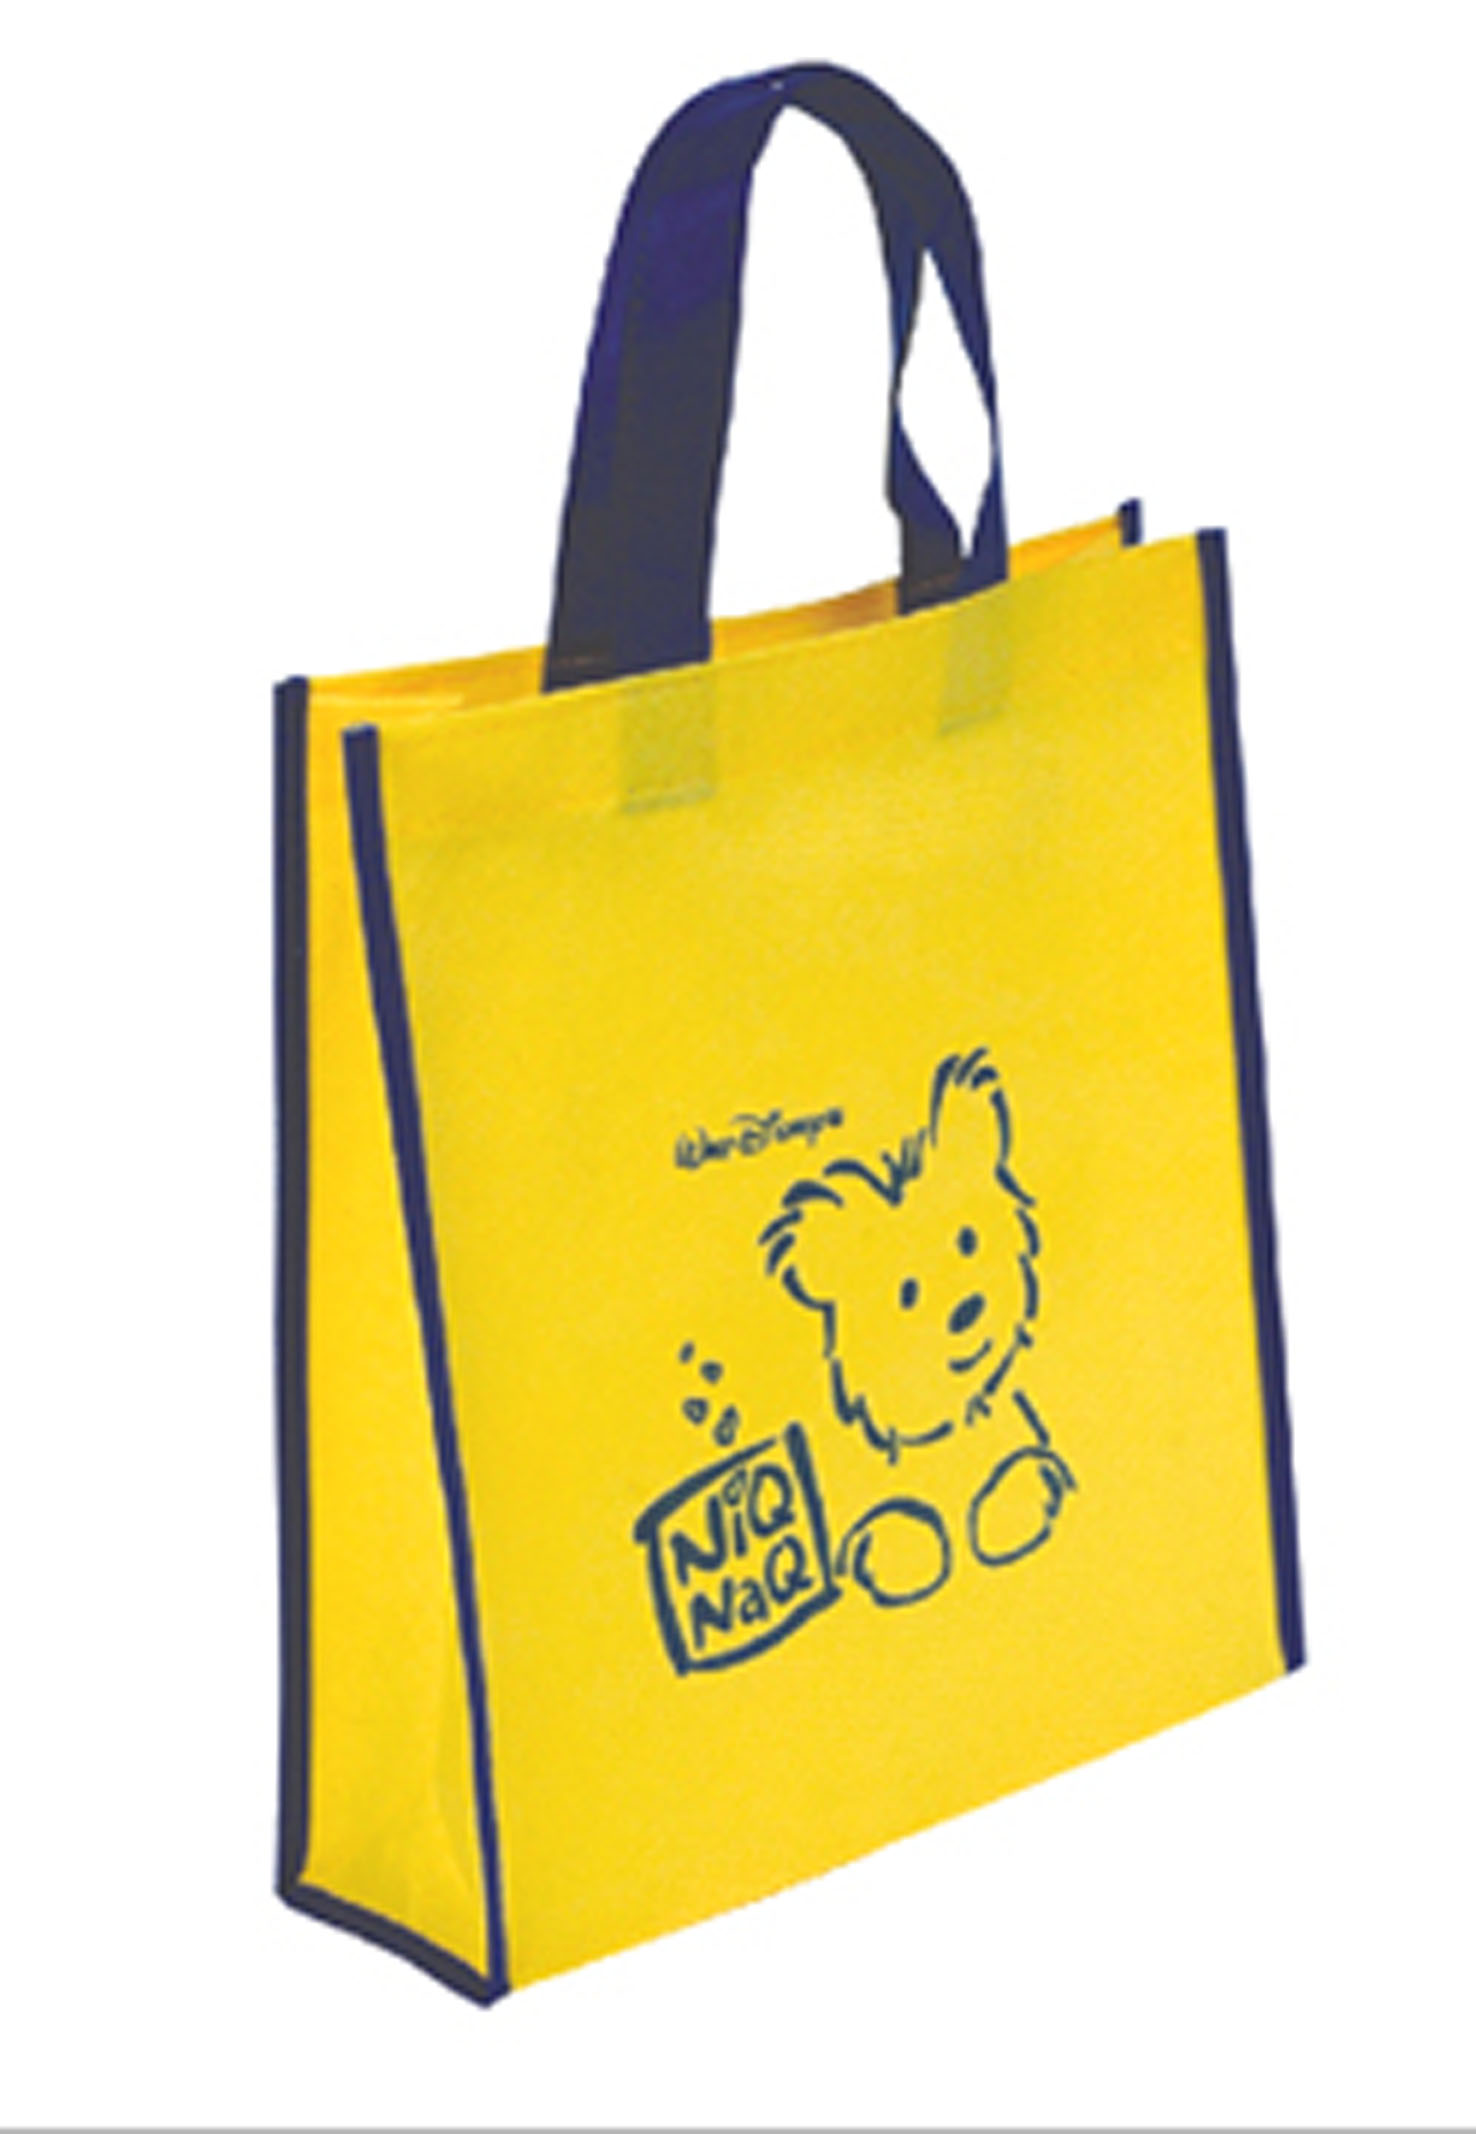 Products - Buy Fancy Shopping Bags from Csl Impex, Mumbai, India ...